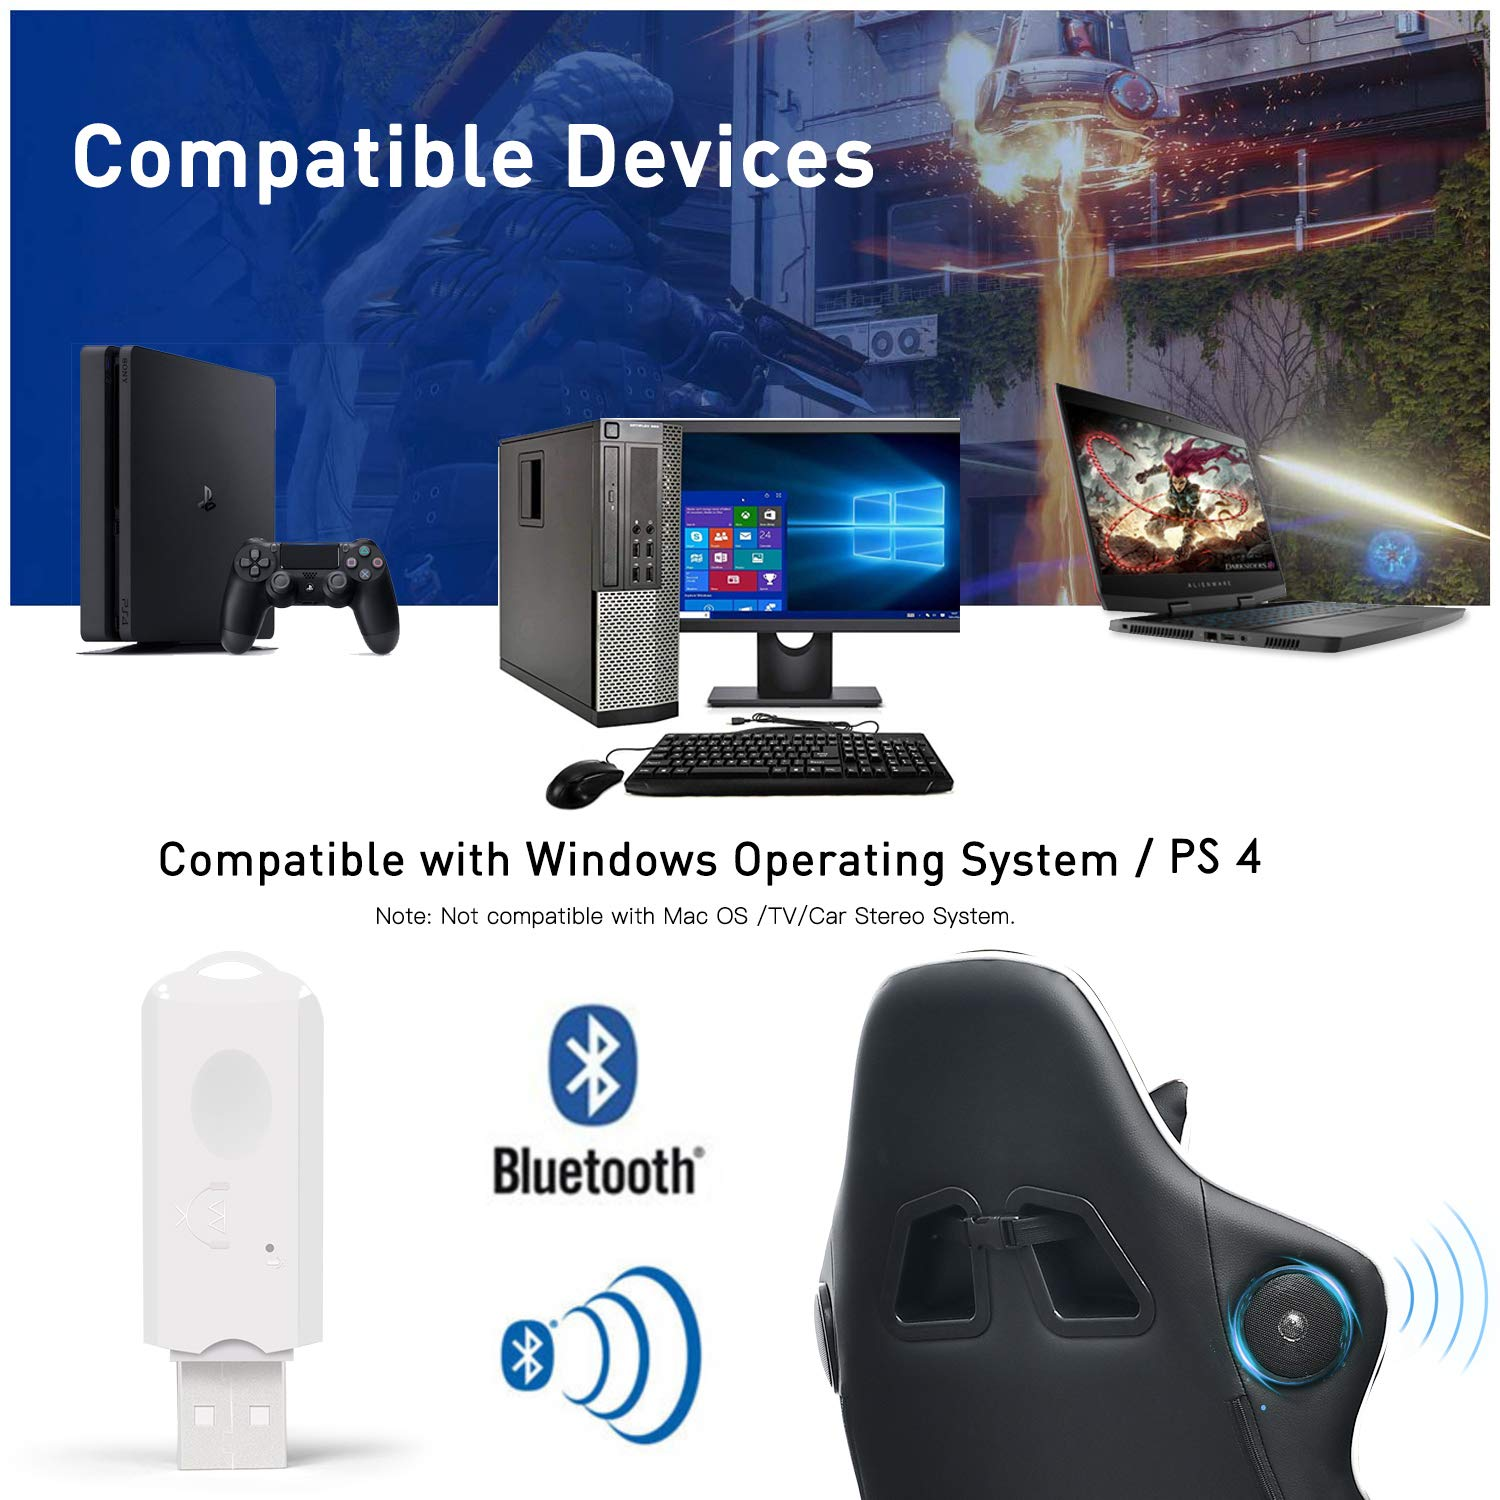 GTRACING Bluetooth USB Adapter Transmitter V5.0 Wireless Dongle for PC Laptop Computer PS4 Connects Audio Gaming Chair Bluetooth Speakers Headphones Support All Windows XP//Vista//7//8//Win10 BA001